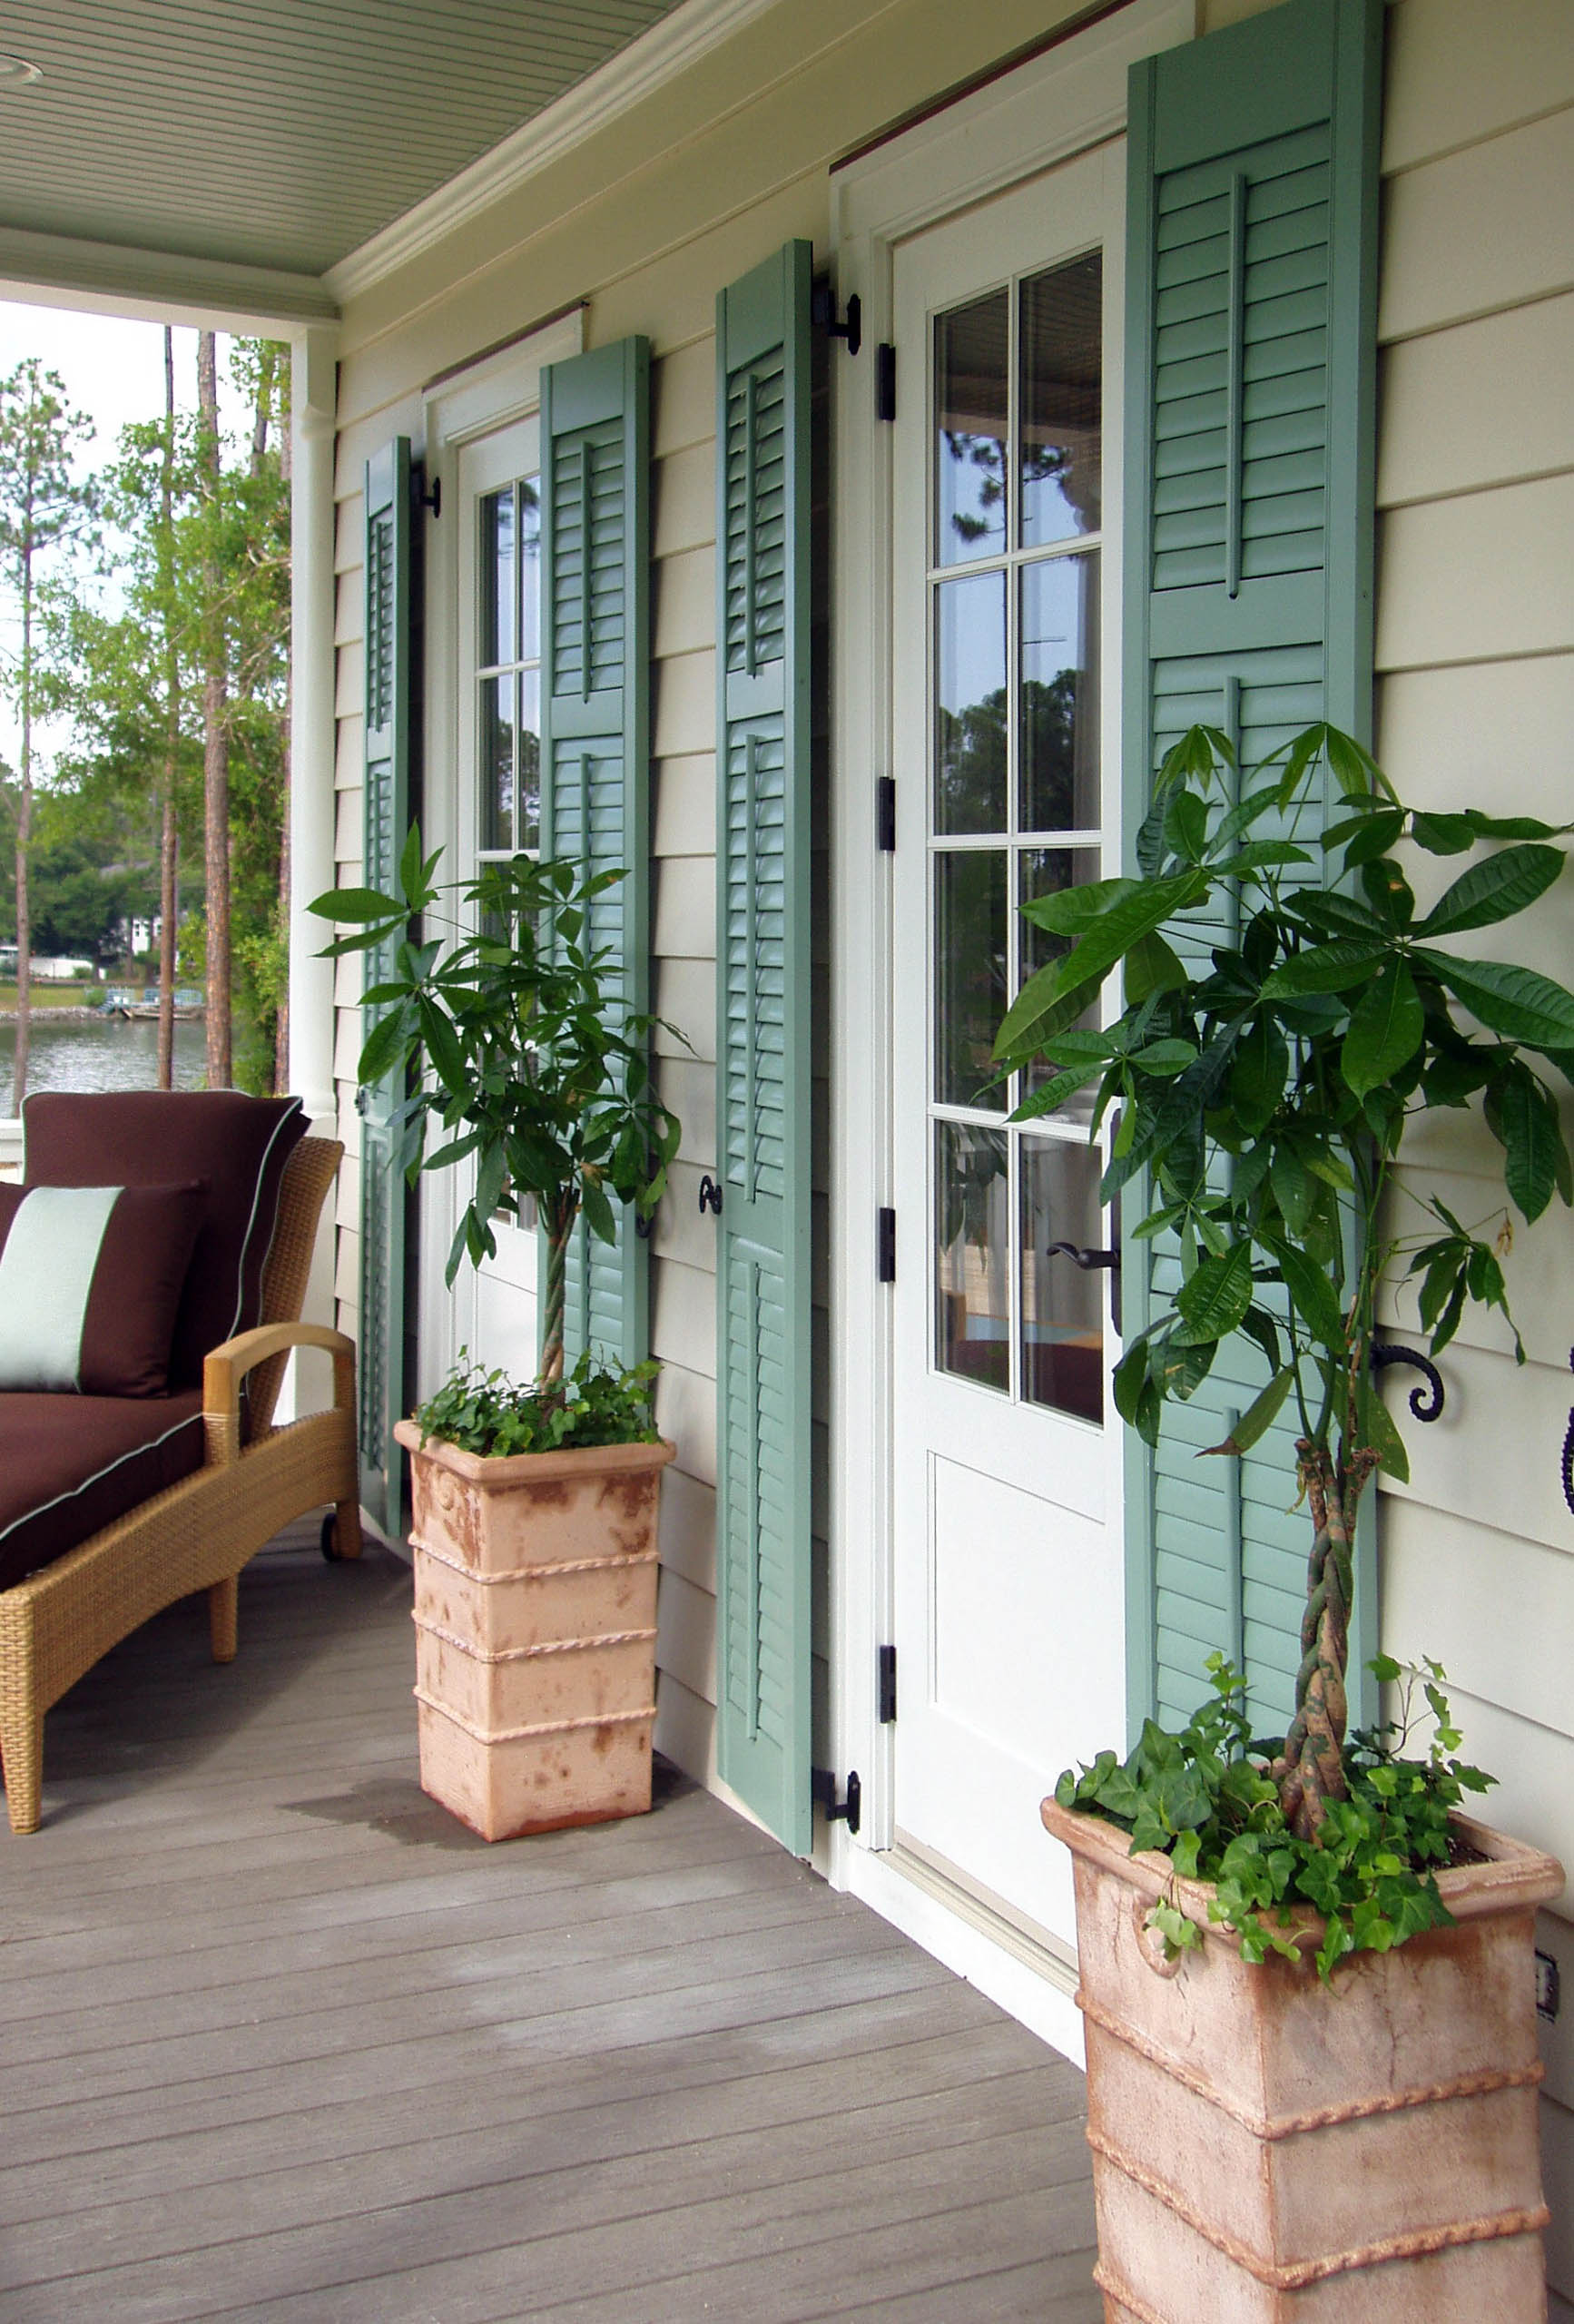 10 Shutter Types That Can Enhance the Complete Look of Your Home